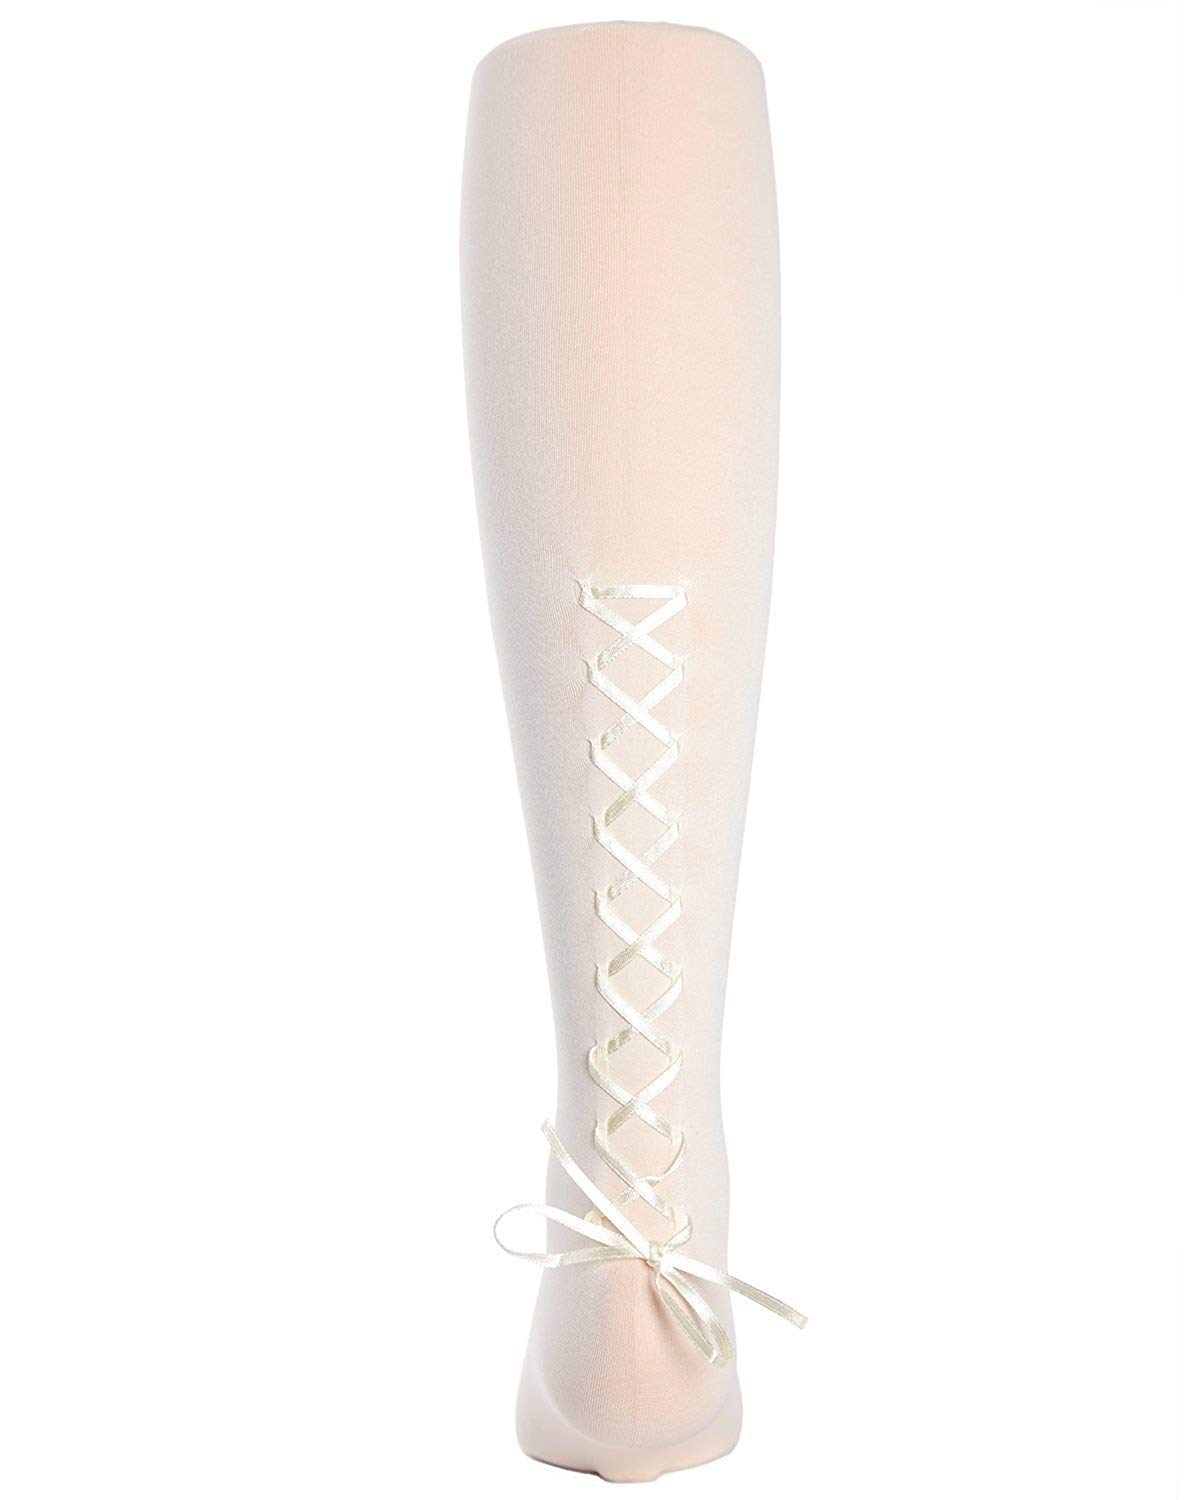 13375b637541a Cheap Girls Patterned Tights, find Girls Patterned Tights deals on ...